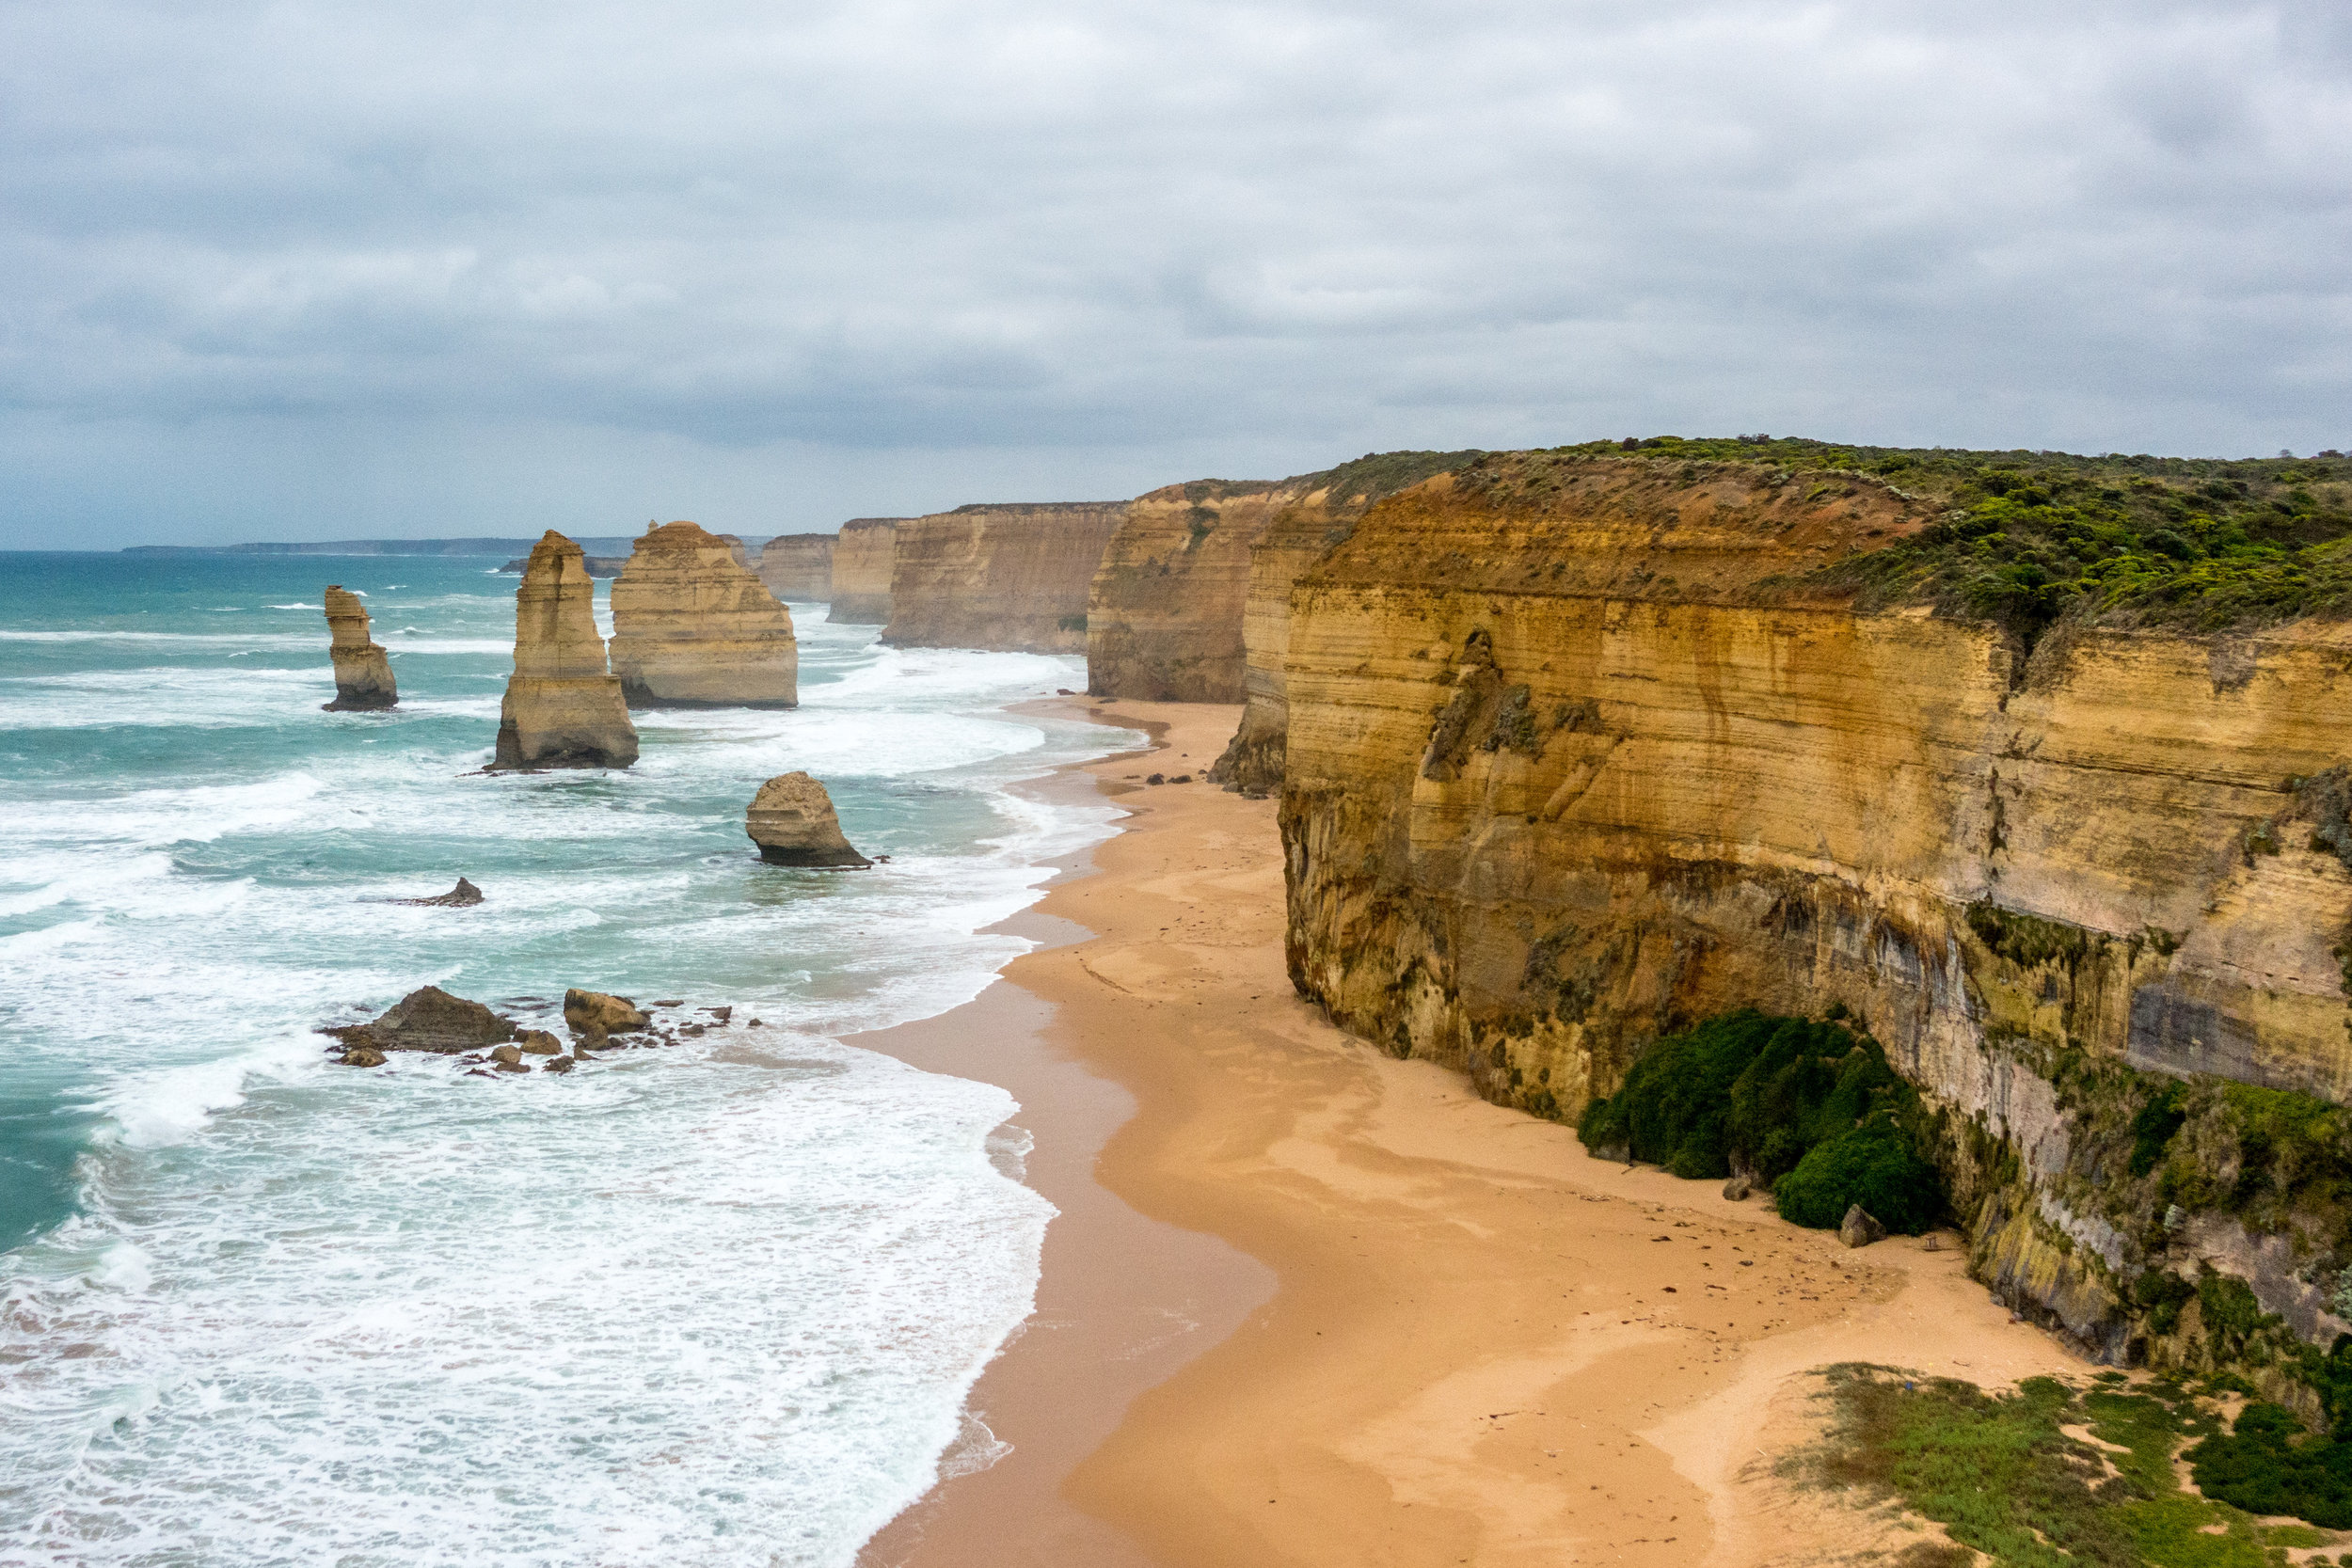 Our visit to  Australia  began in trendy Melbourne, then down the treasure-lined Gold Coast. We gawked at koalas and wallabies, and witnessed the gospel of the Twelve Apostles.    Read more...